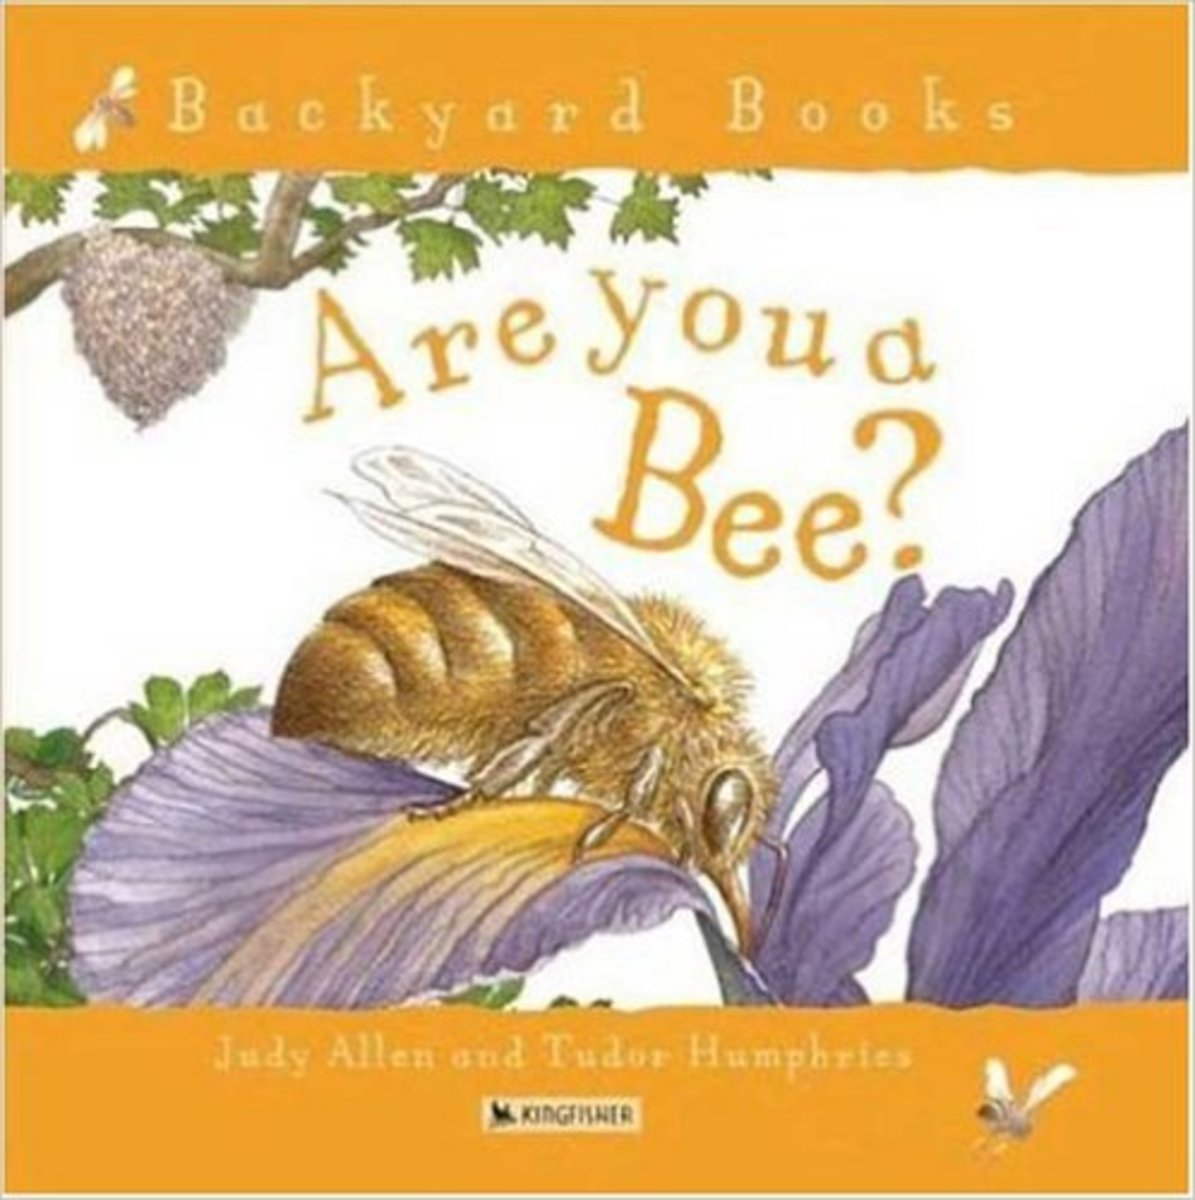 Are You a Bee? (Backyard Books) by Judy Allen